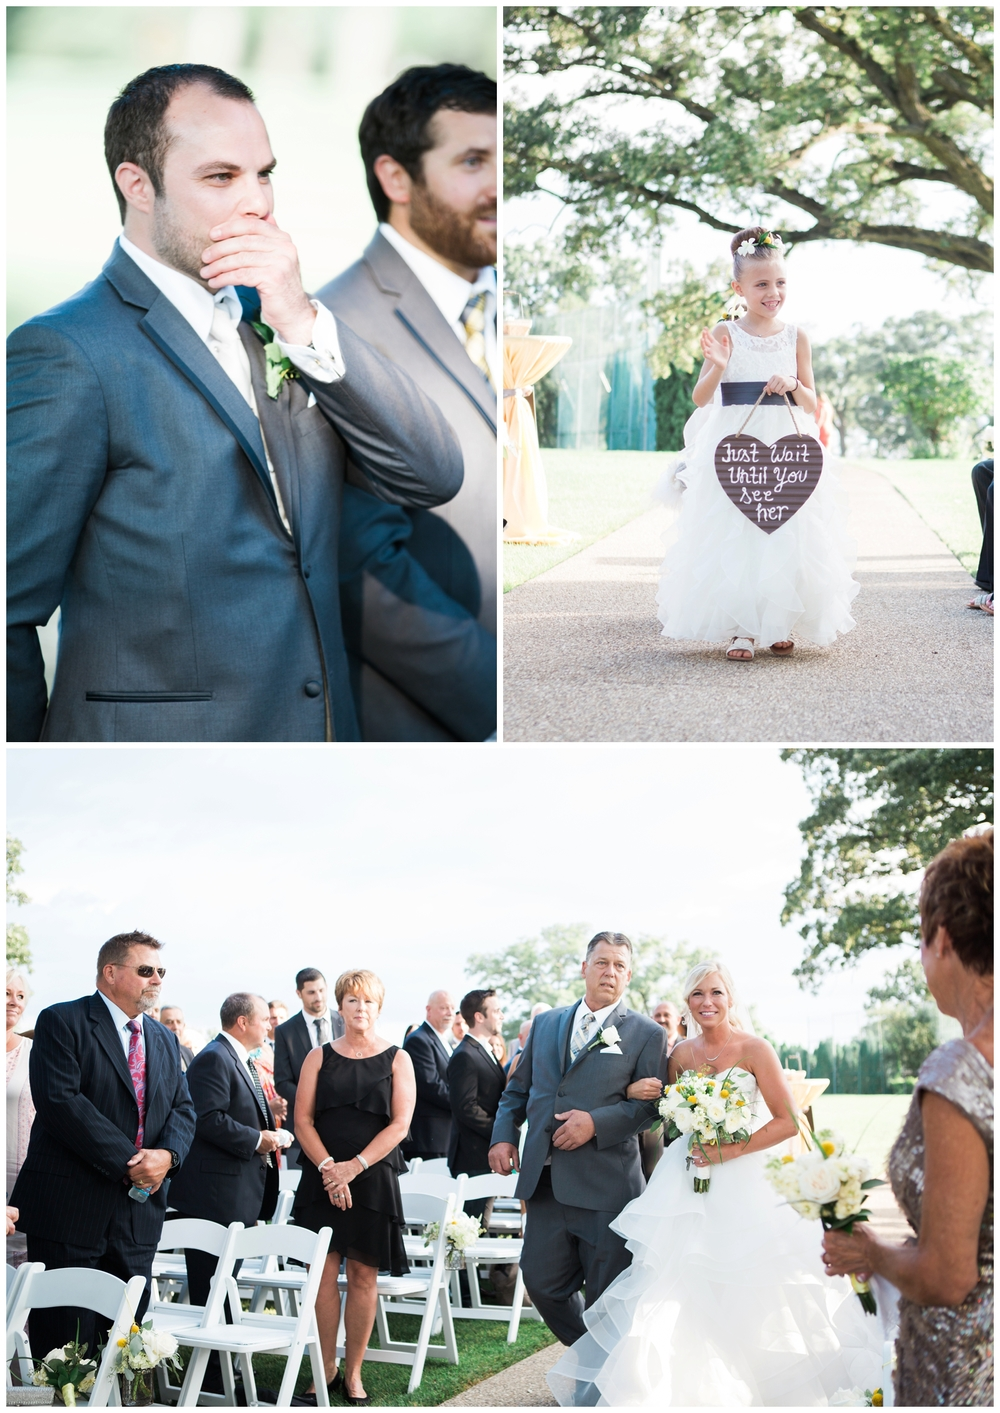 Paul was speechless as his bride came into view..